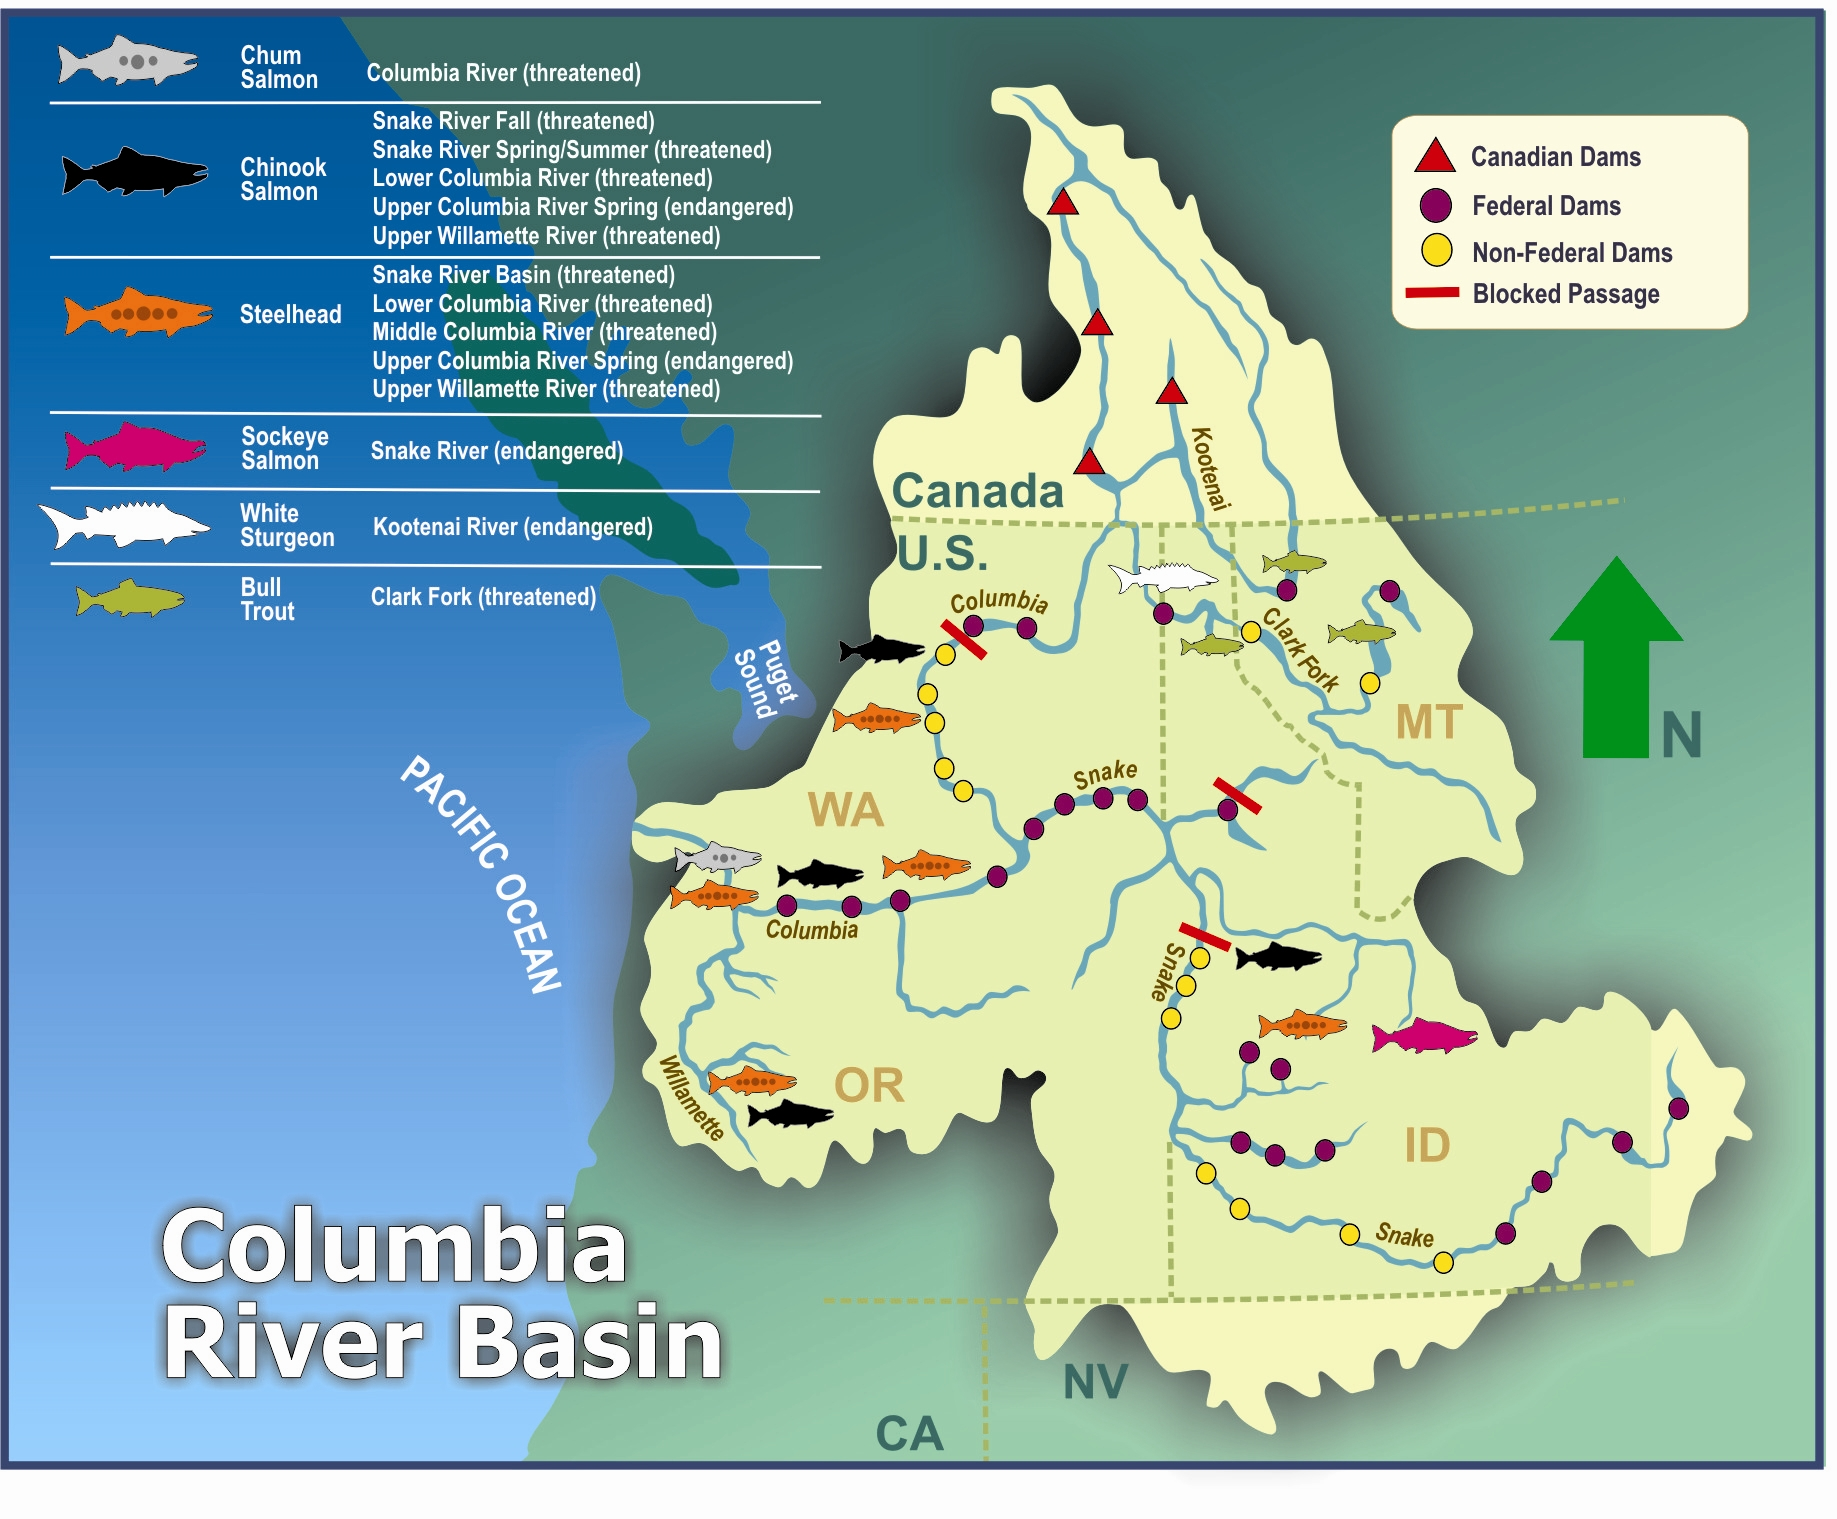 Columbia Basin ESA map on canadian columbia river dams map, wanapum dam columbia river on map, us dams and reservations map, snake river dams map, bonneville dam map,